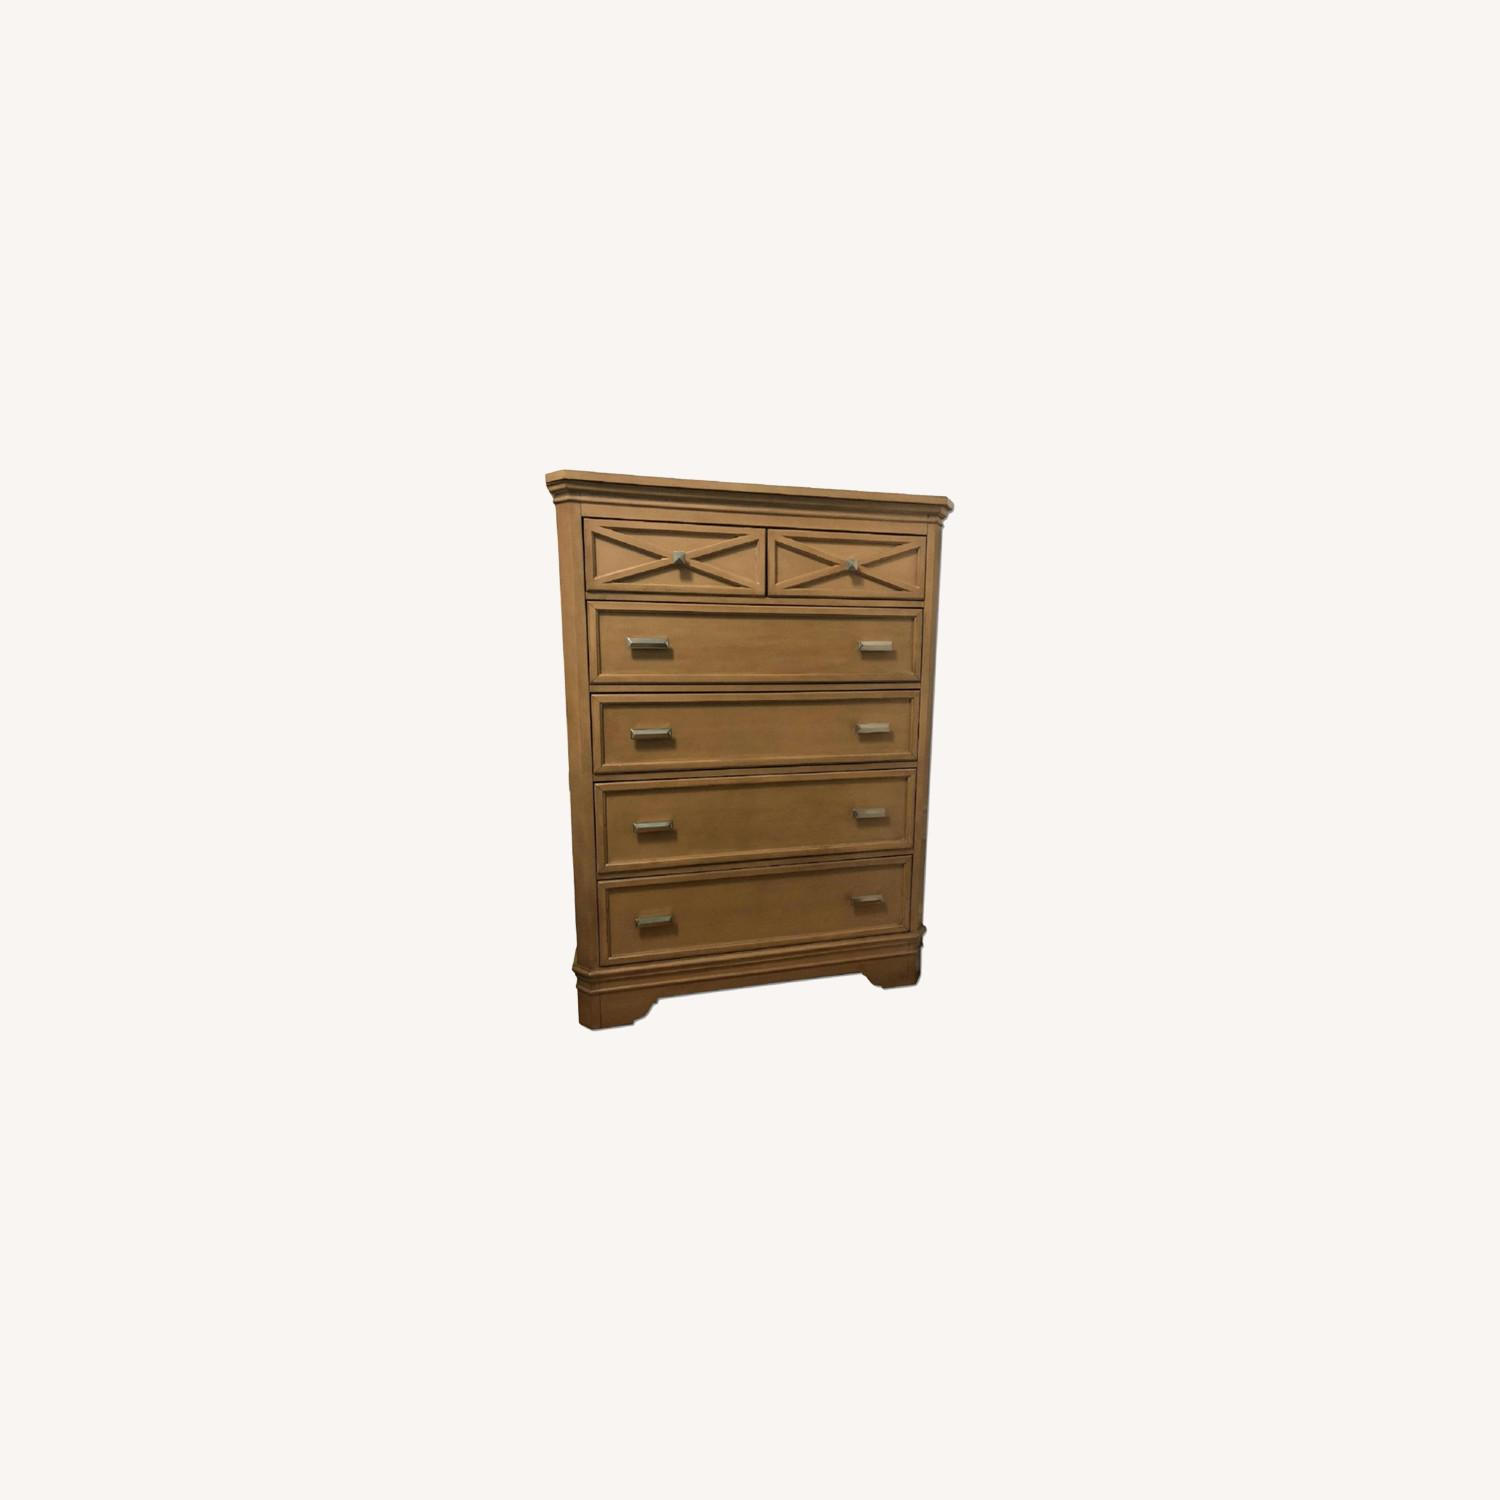 Natural Wood Dresser - image-0